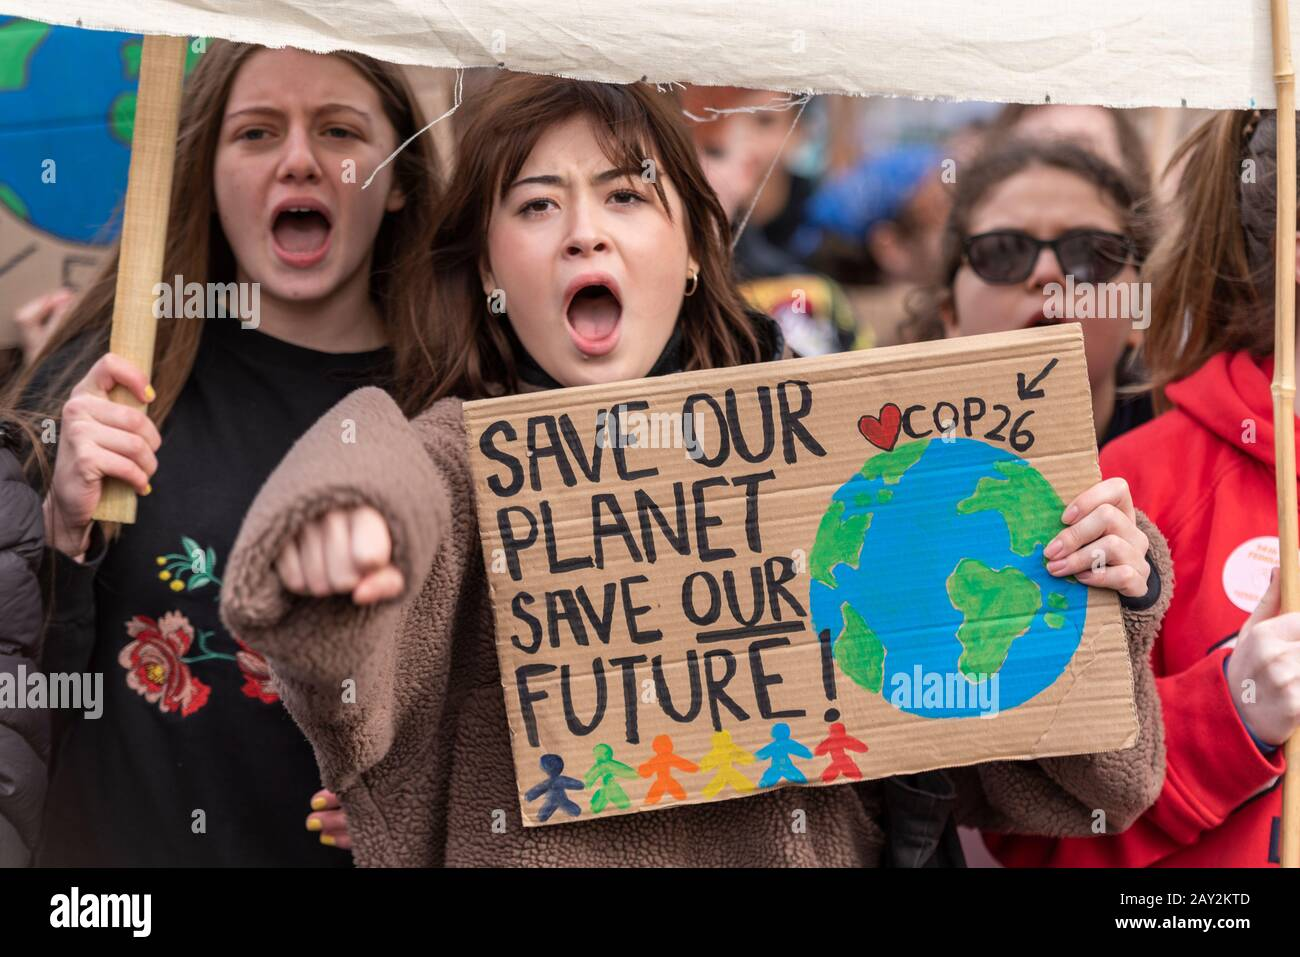 parliament-square-london-uk-14th-feb-2020-one-year-after-the-first-uk-youth-climate-strike-youngsters-are-again-protesting-to-demand-climate-action-they-believe-that-governments-are-not-acting-fast-enough-to-reverse-the-damage-to-the-climate-many-skipped-their-education-to-attend-2AY2KTD.jpg